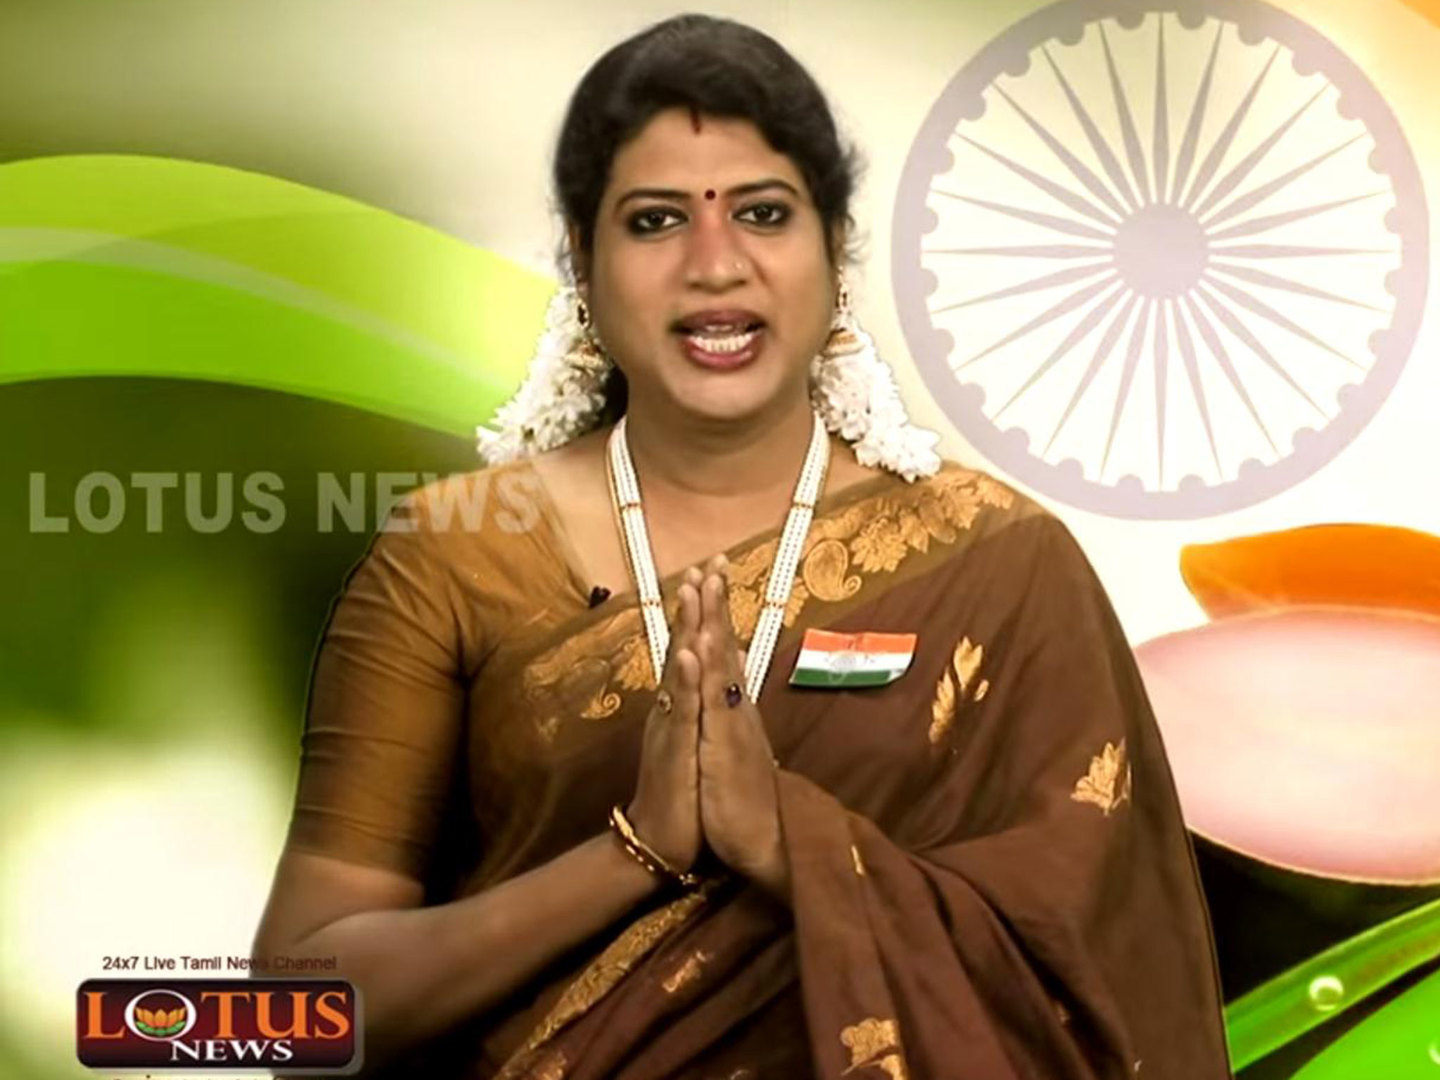 India Hires Its First Trangender TV News Anchor - OUTInPerth